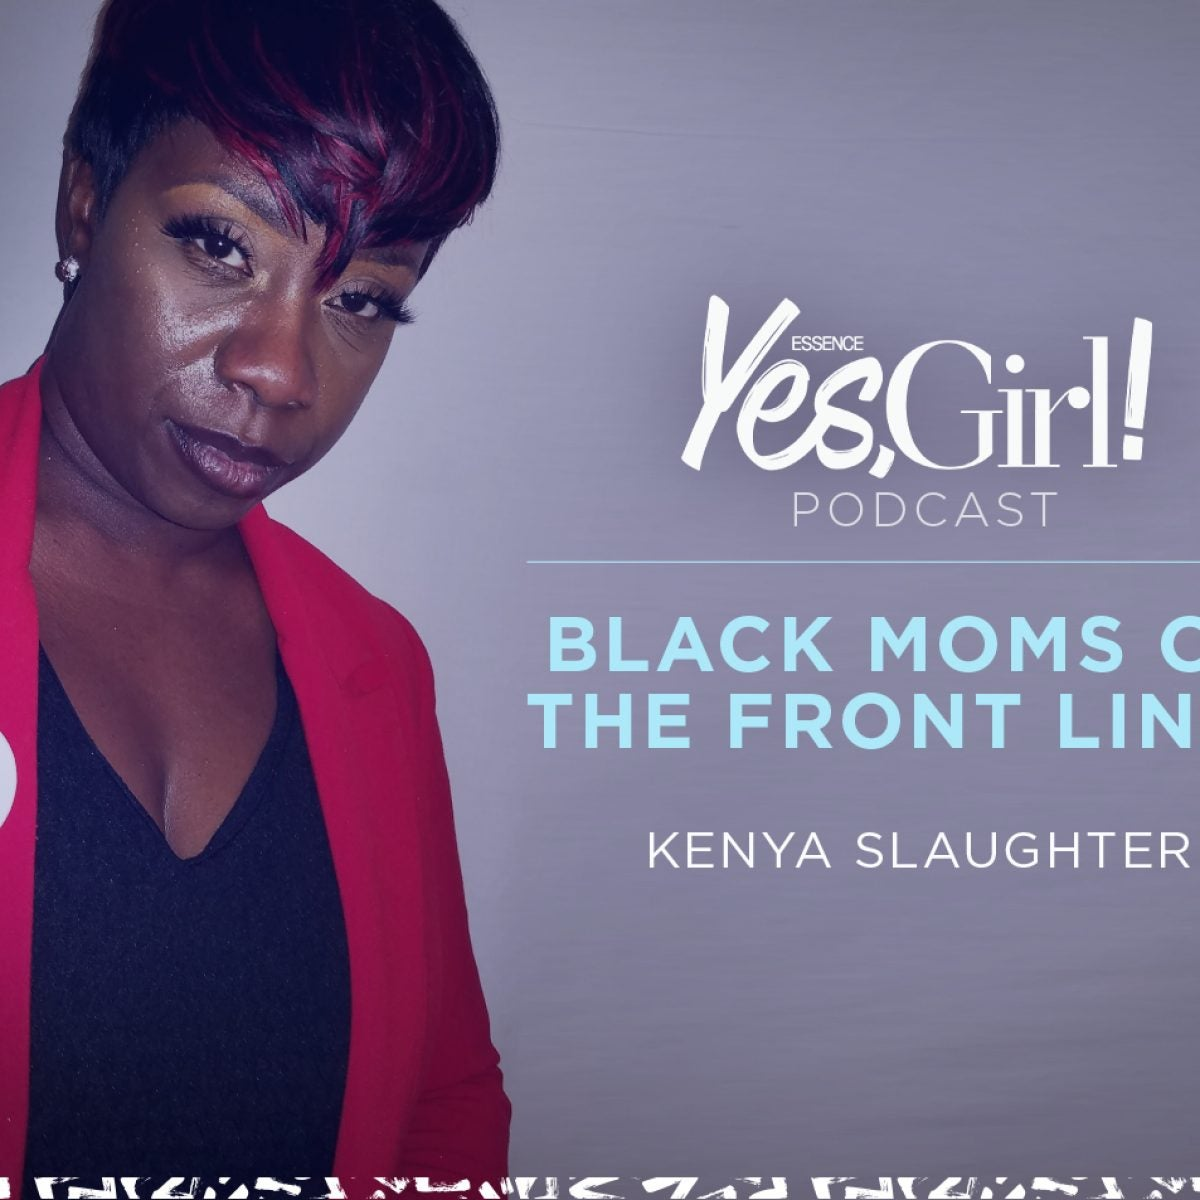 Black Moms On The Front Lines: Kenya Slaughter Steps Up For Retail Employees' Rights